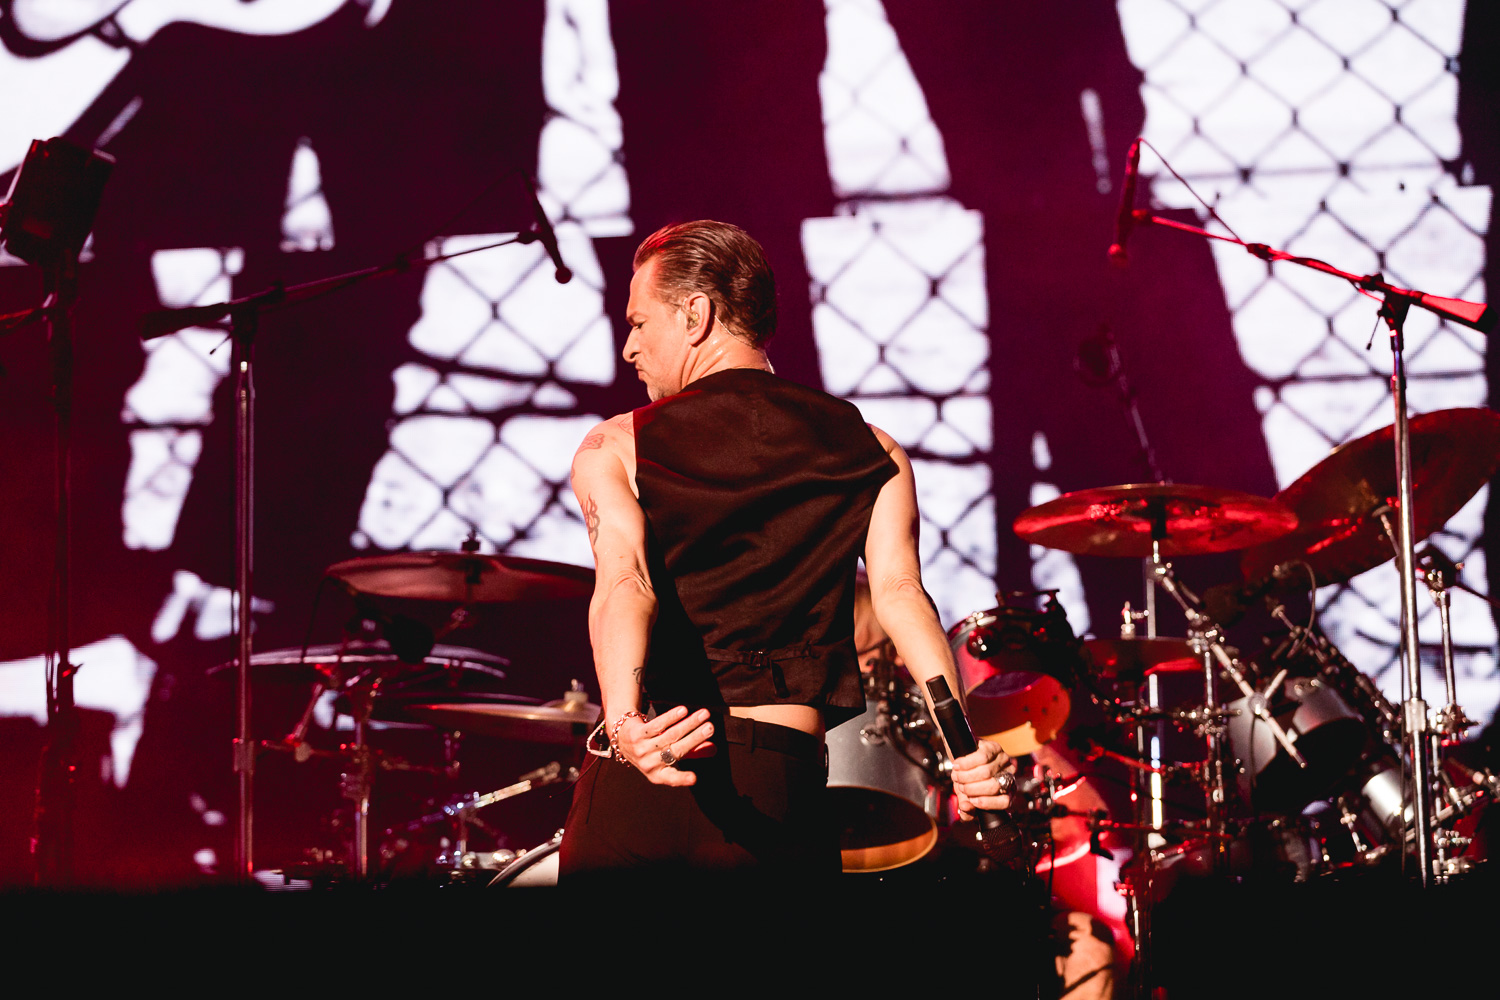 Dave Gahan in SLC. Photo: Lmsorenson.net